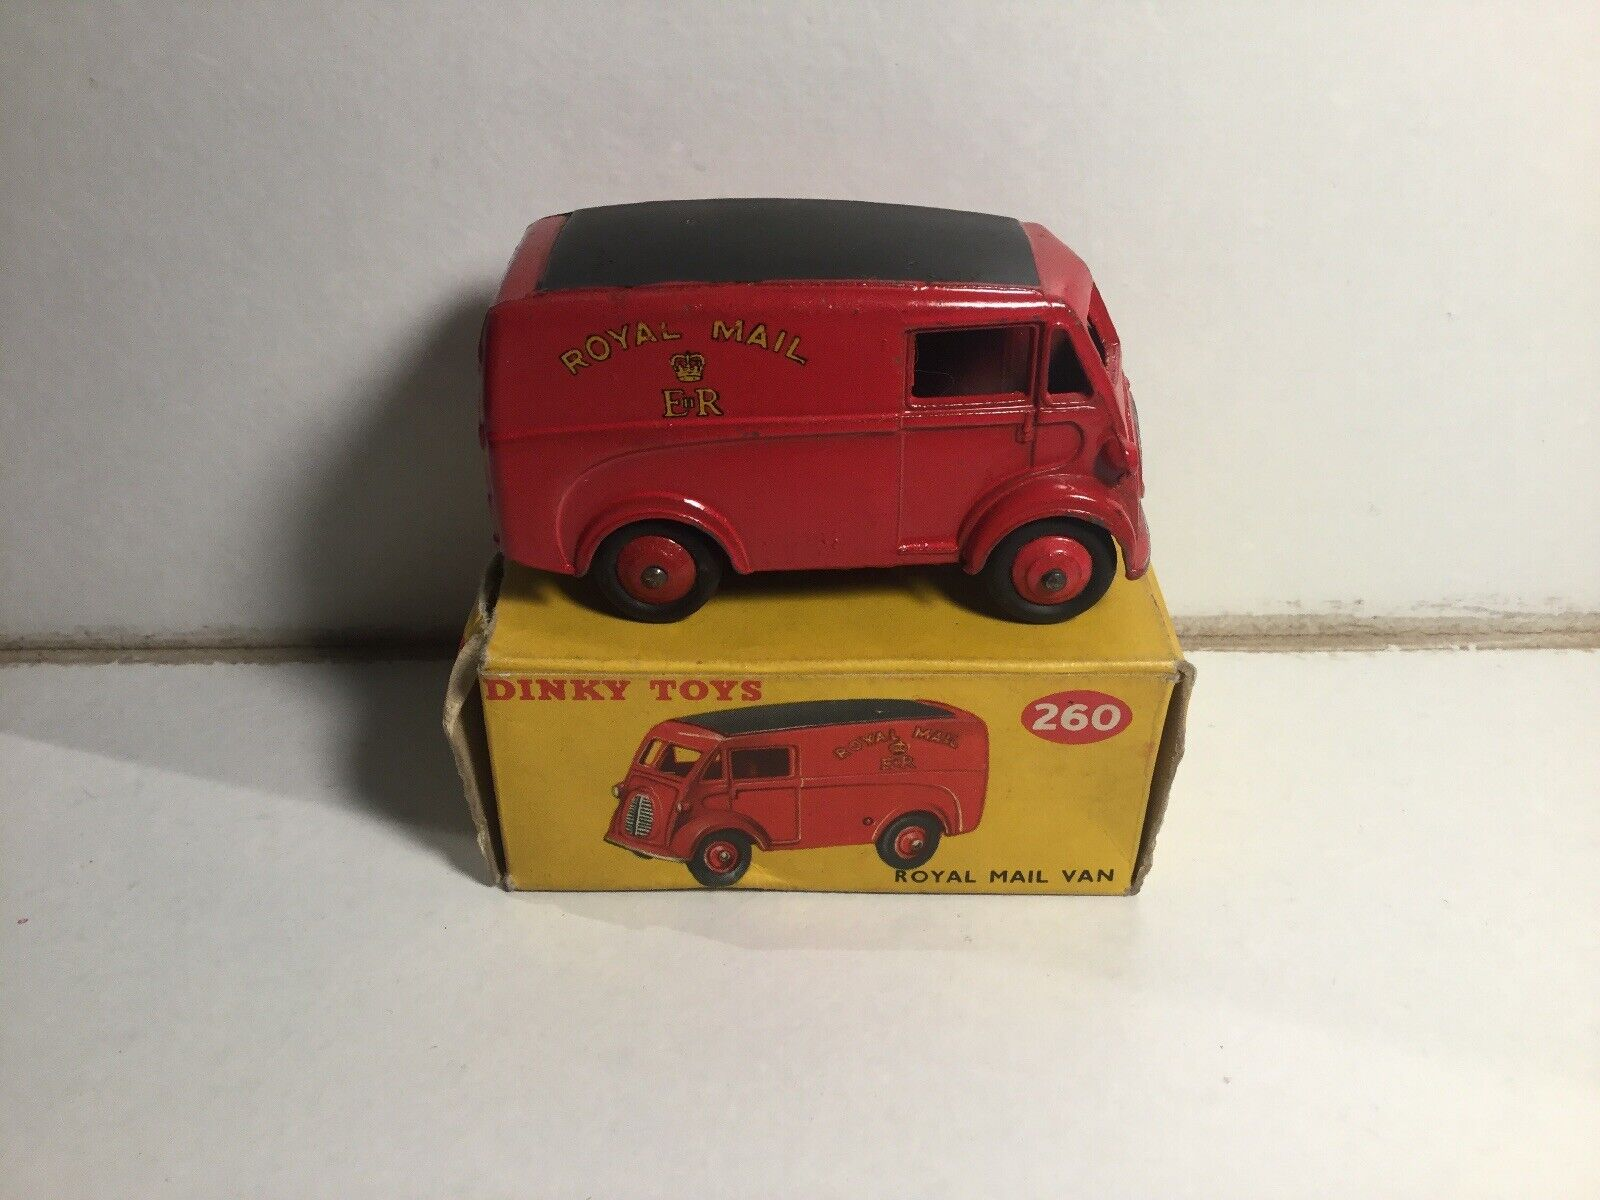 Vintage Dinky Toys No 260 Royal Mail Van Within Its Original Box